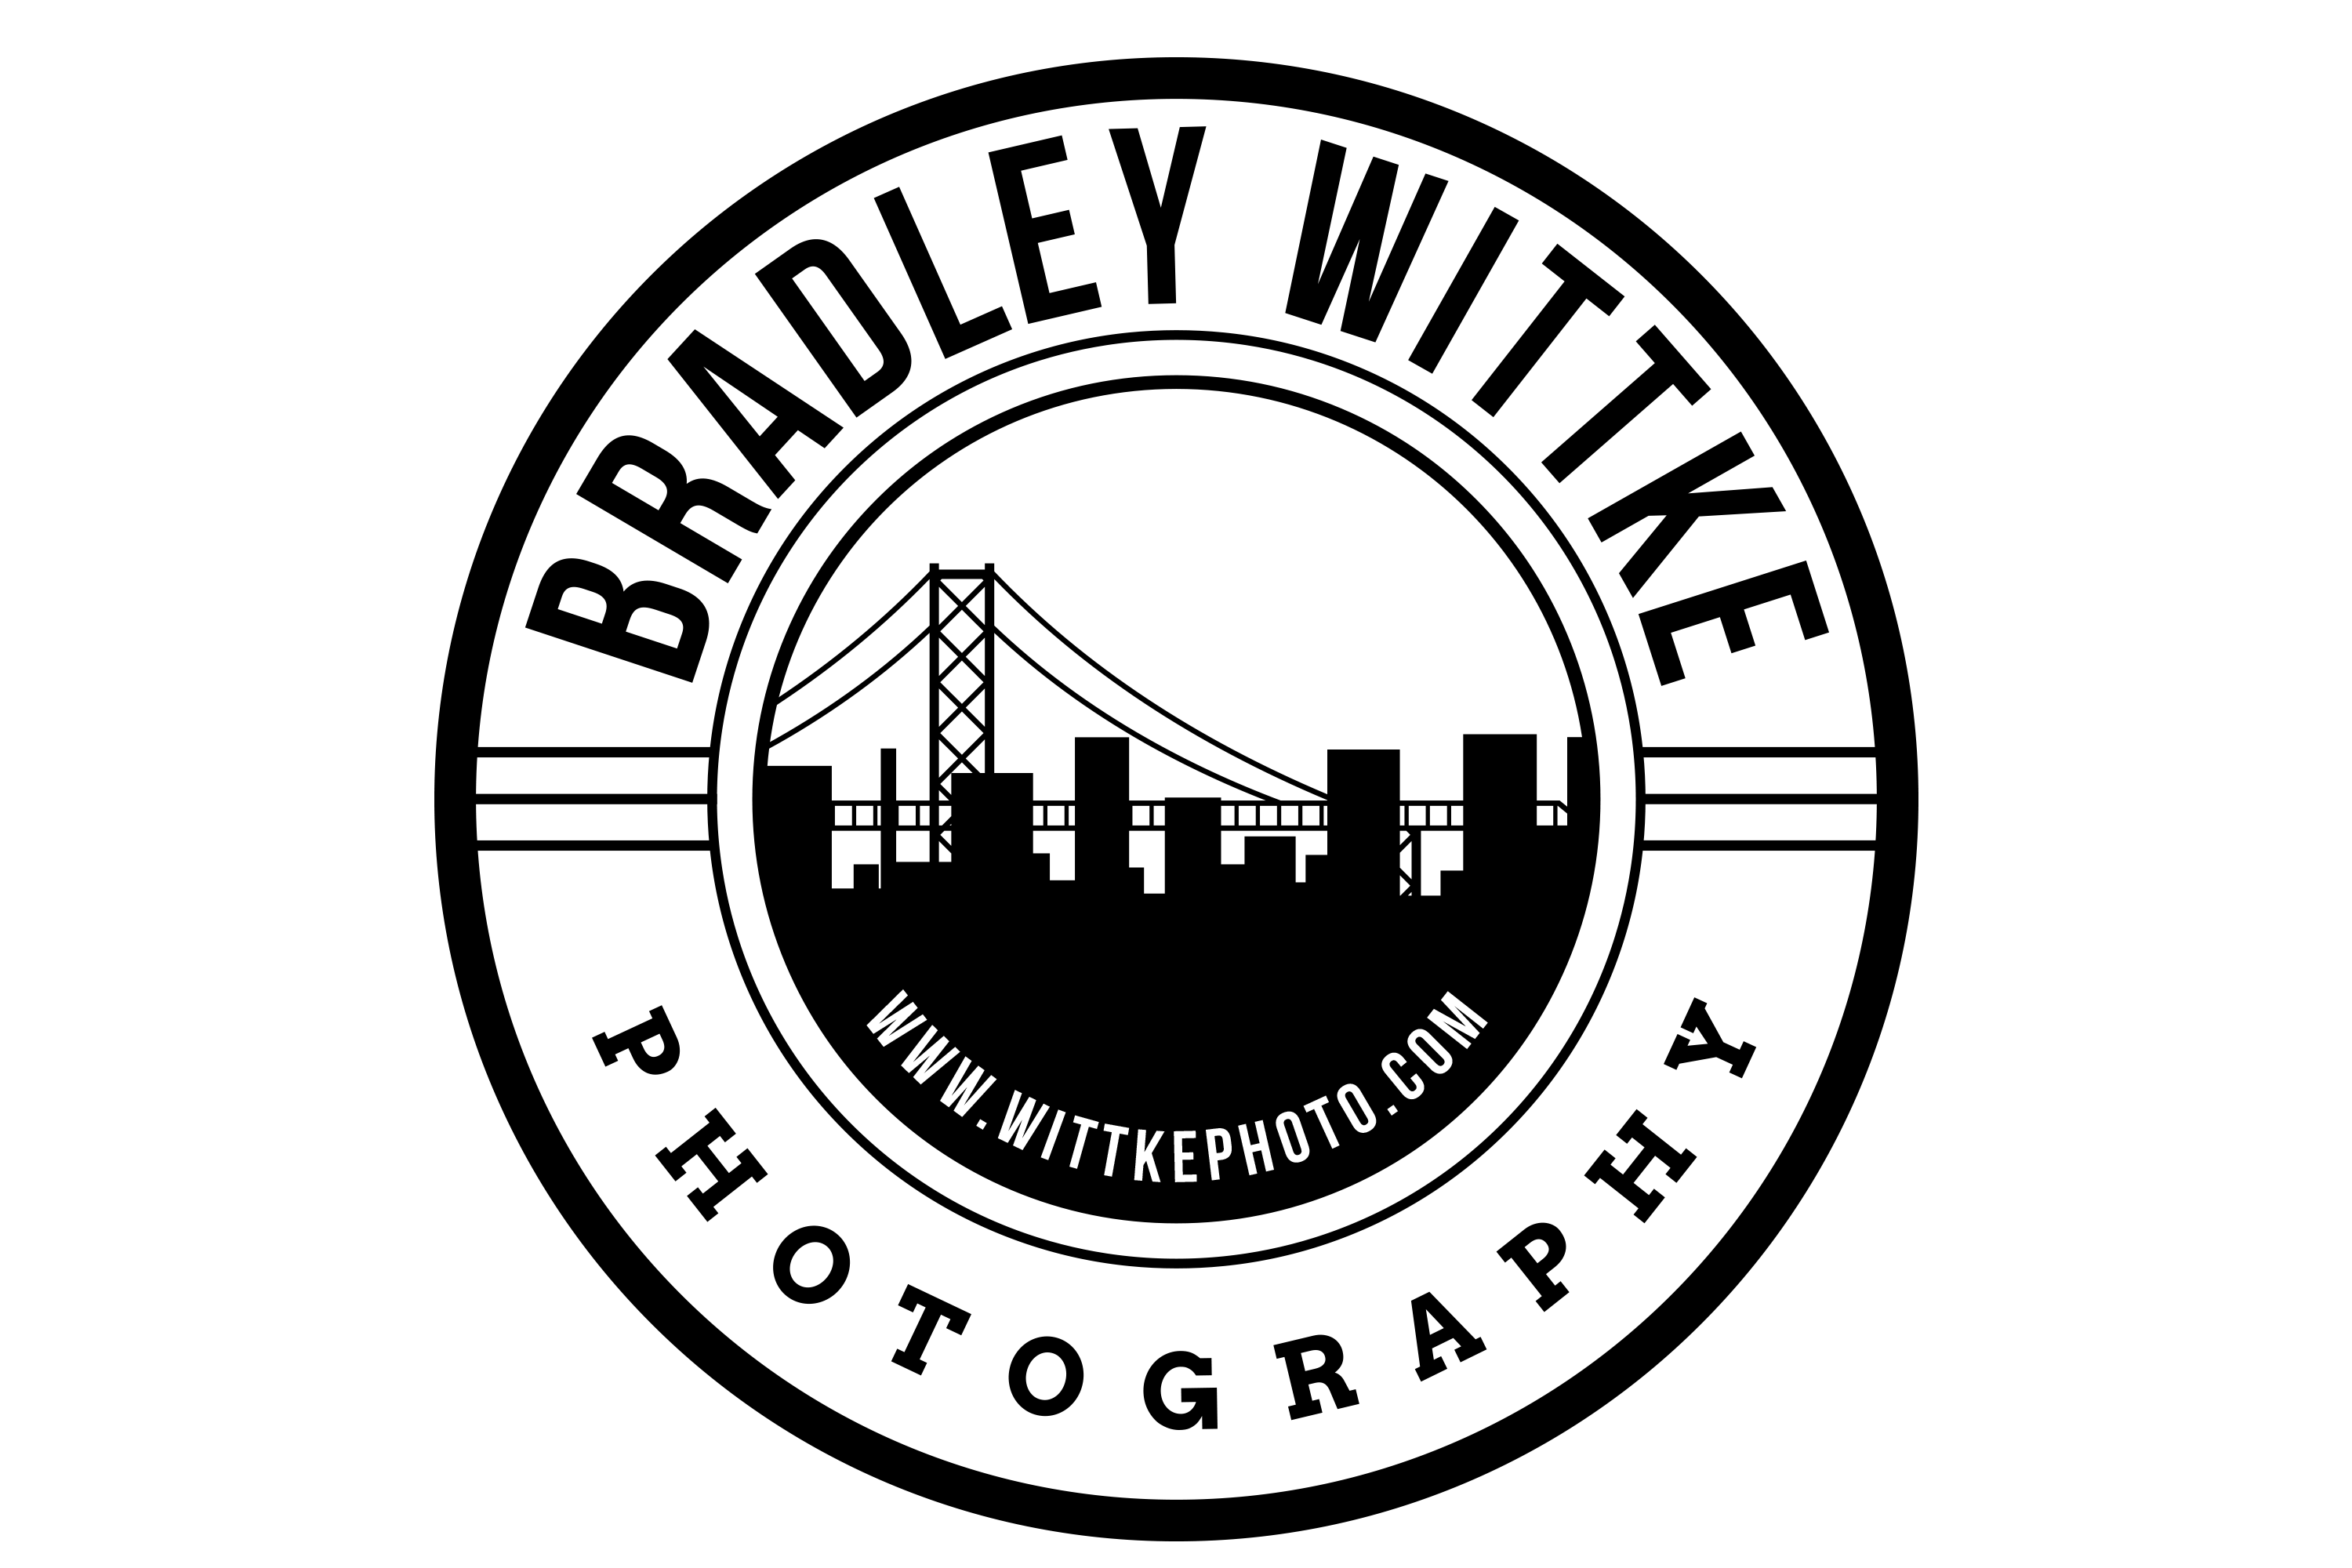 Bradley Wittke Photography